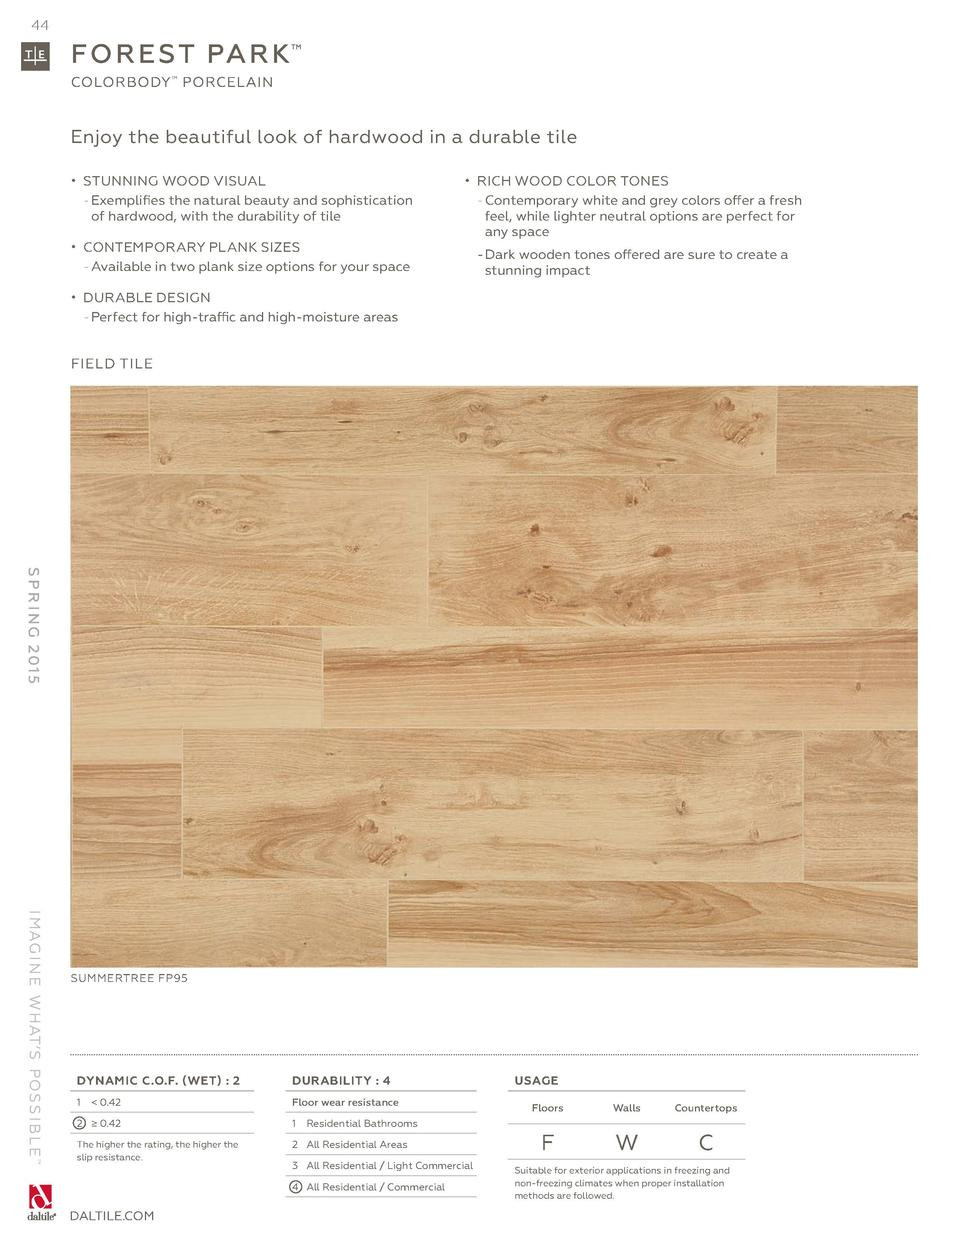 hardwood flooring companies in greensboro nc of daltile spring 2015 catalog simplebooklet com regarding 44 fo r e st pa r k colorbody porcelain enjoy the beautiful look of hardwood in a